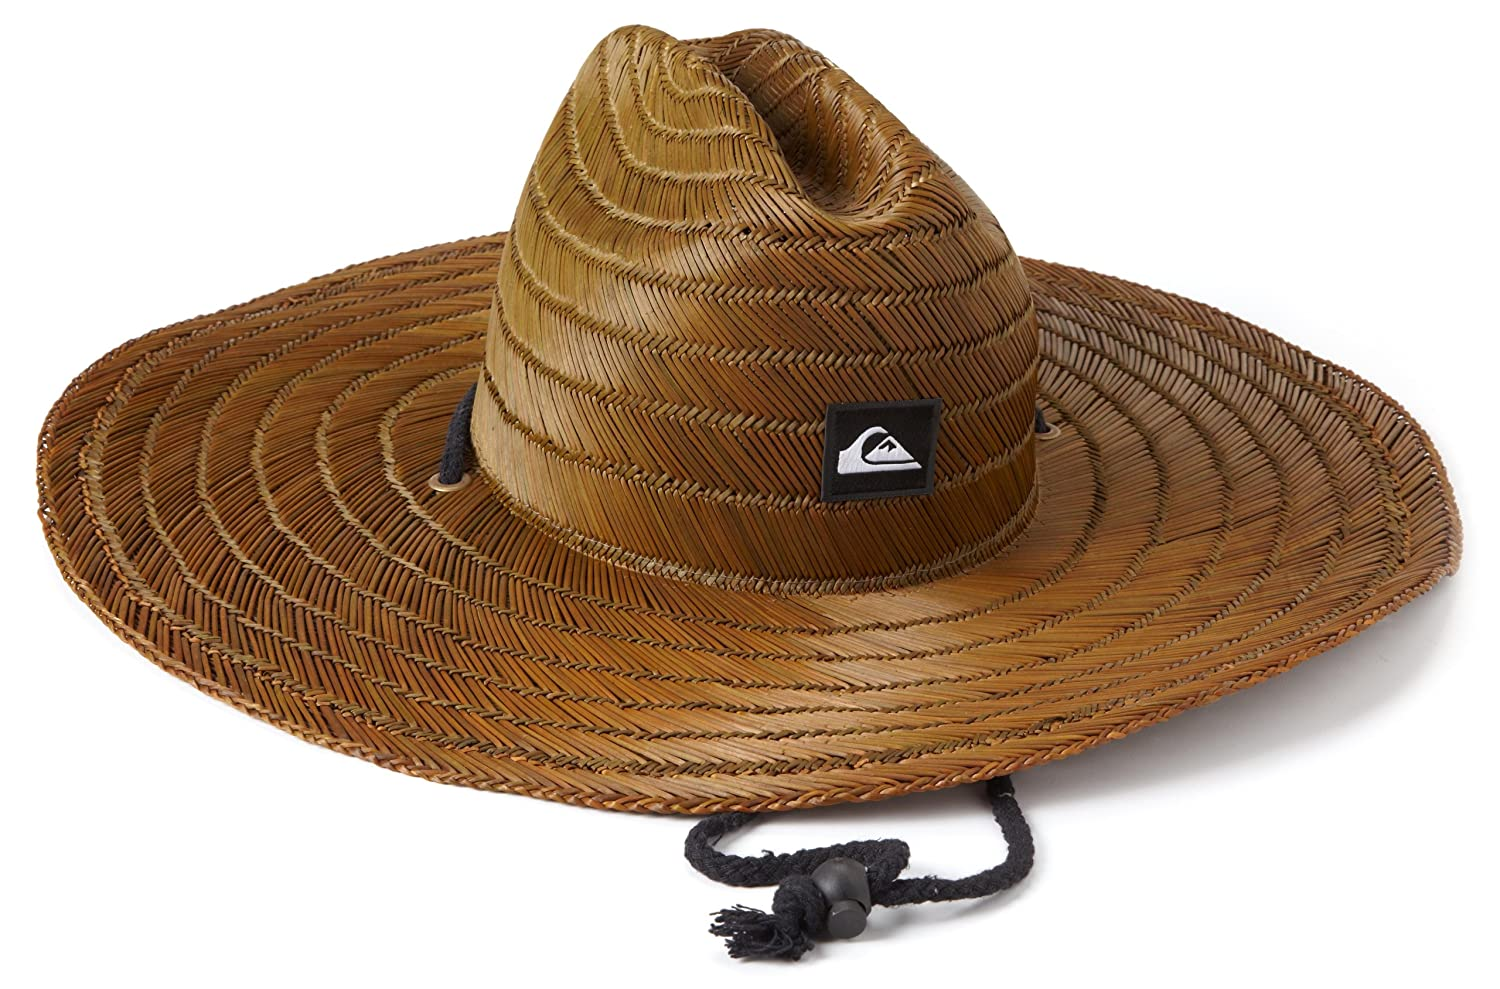 da2672310b024d Amazon.com: Quiksilver Men's Pierside Straw Hat, Dark Brown, One Size:  Clothing